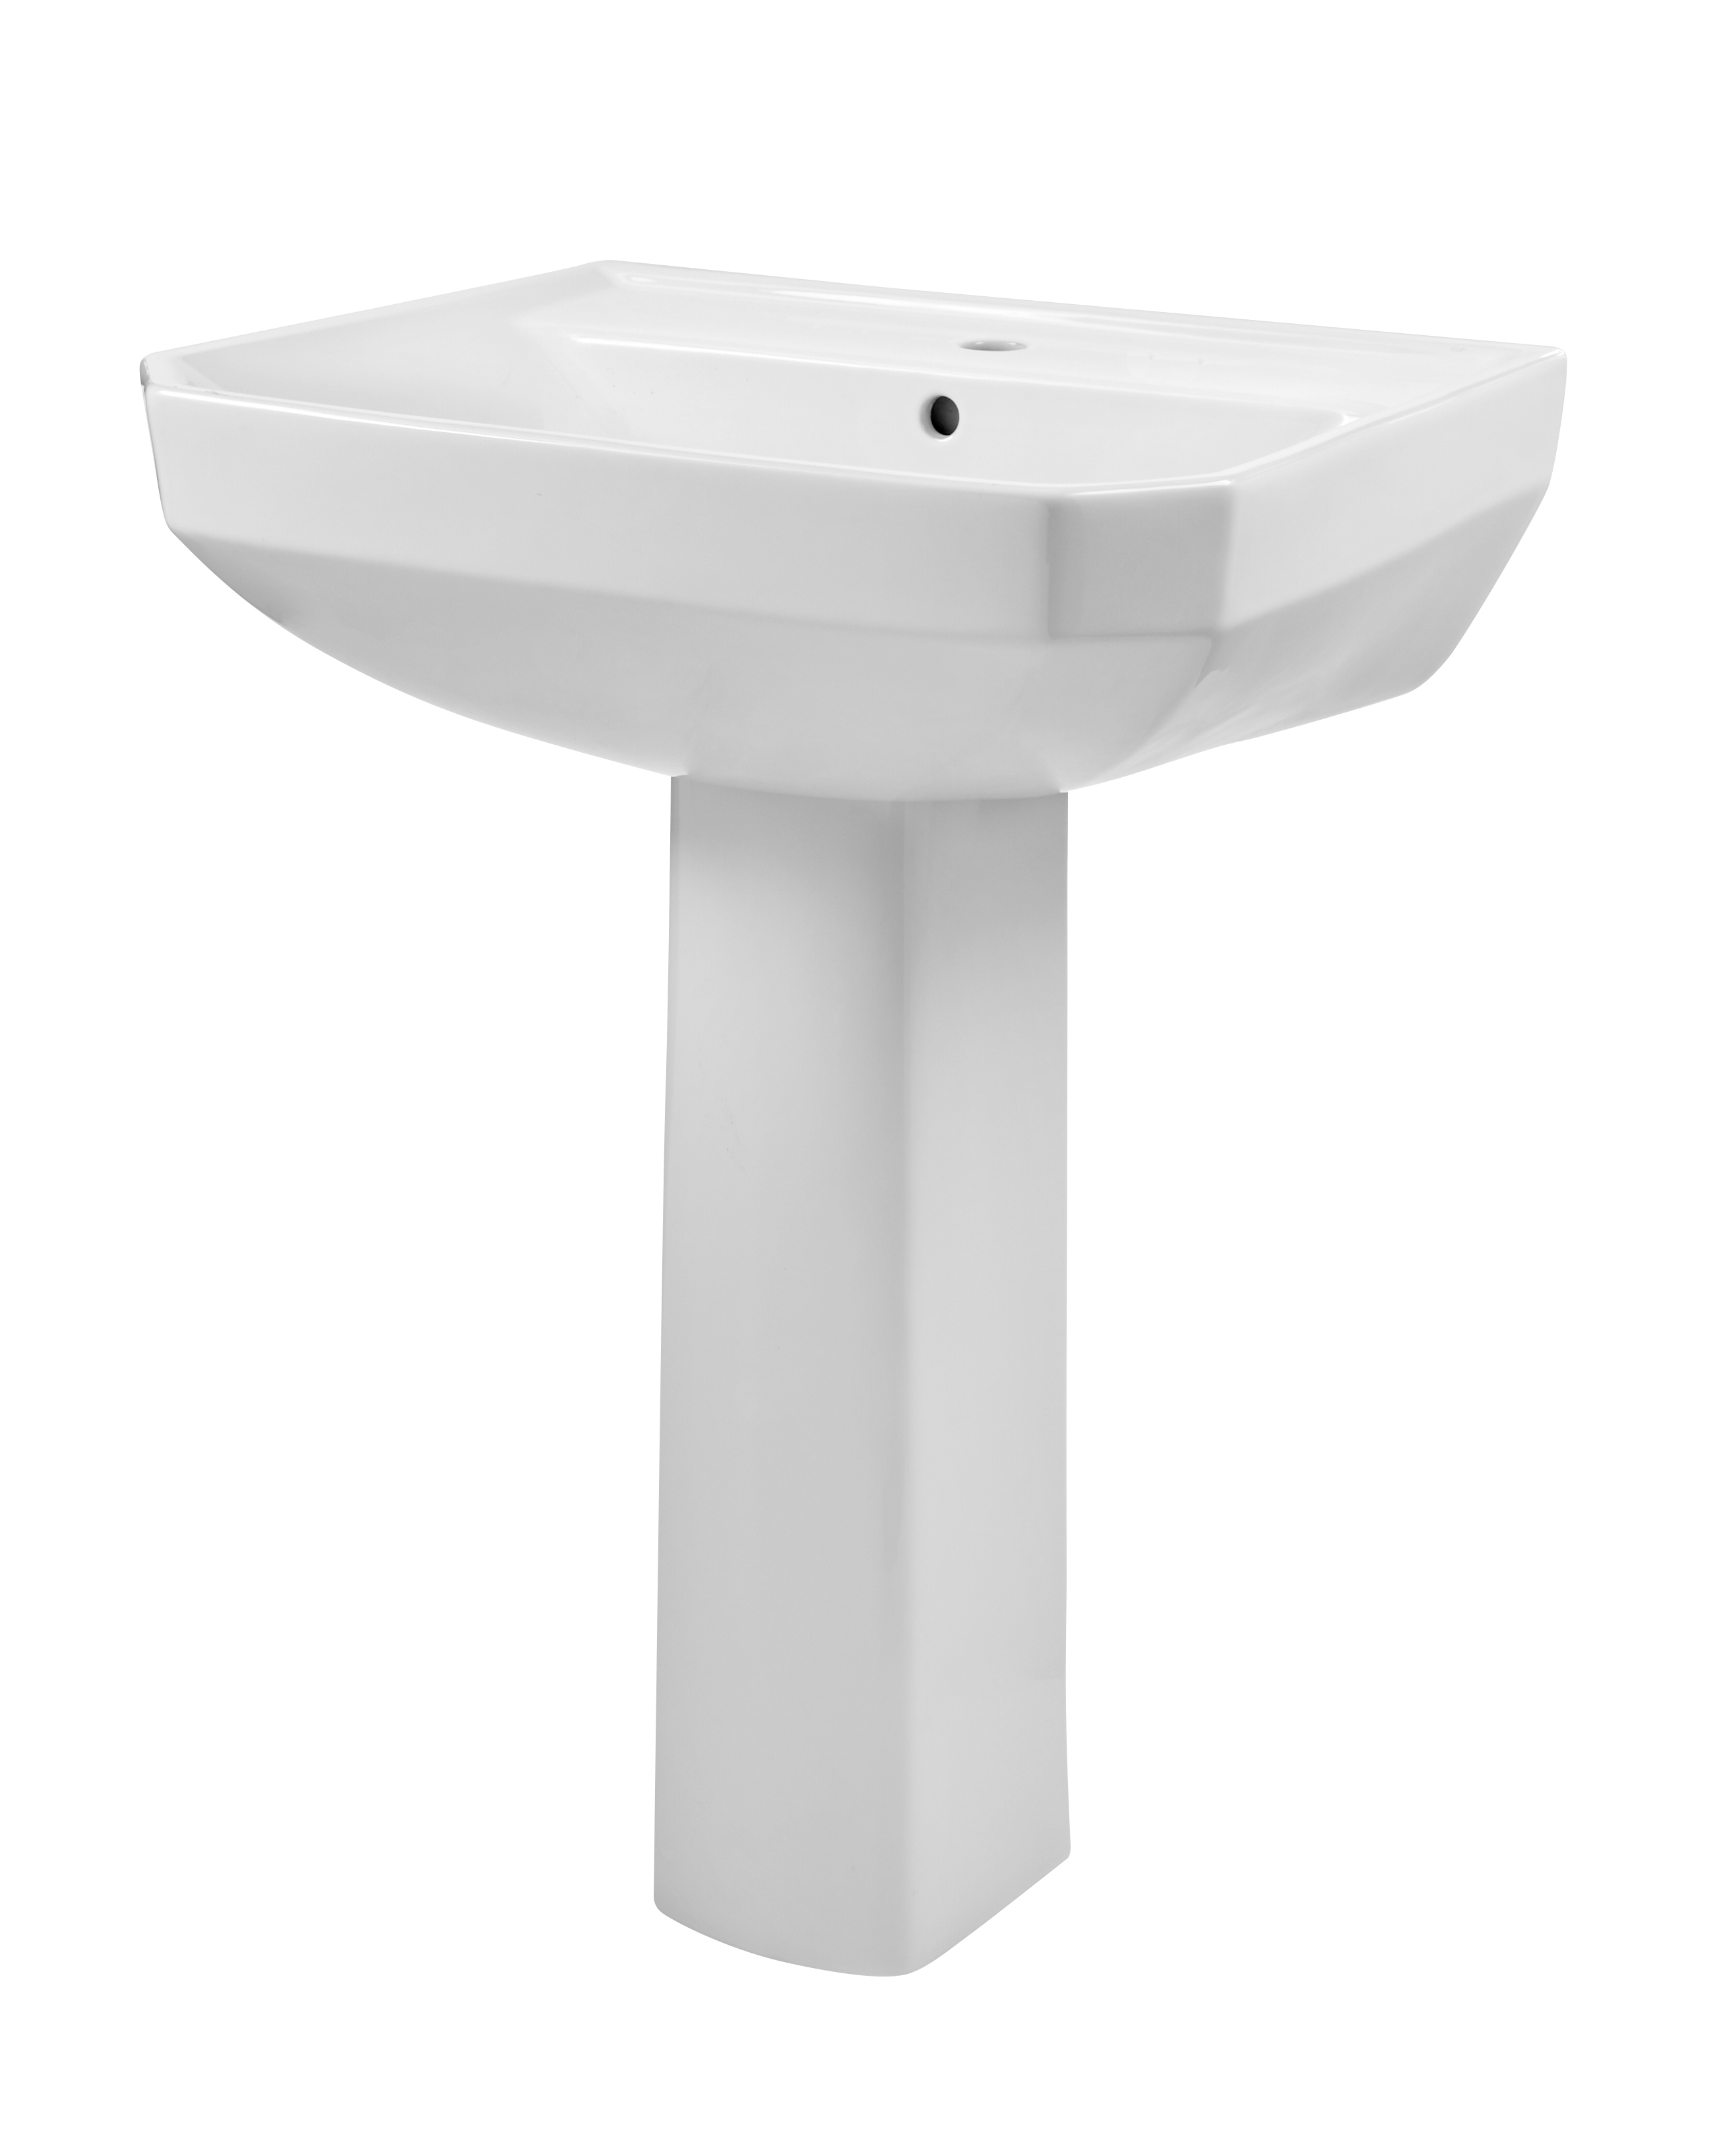 Industrial Pedestal Sink Viper Single Hole Standard Pedestal Bathroom Sink